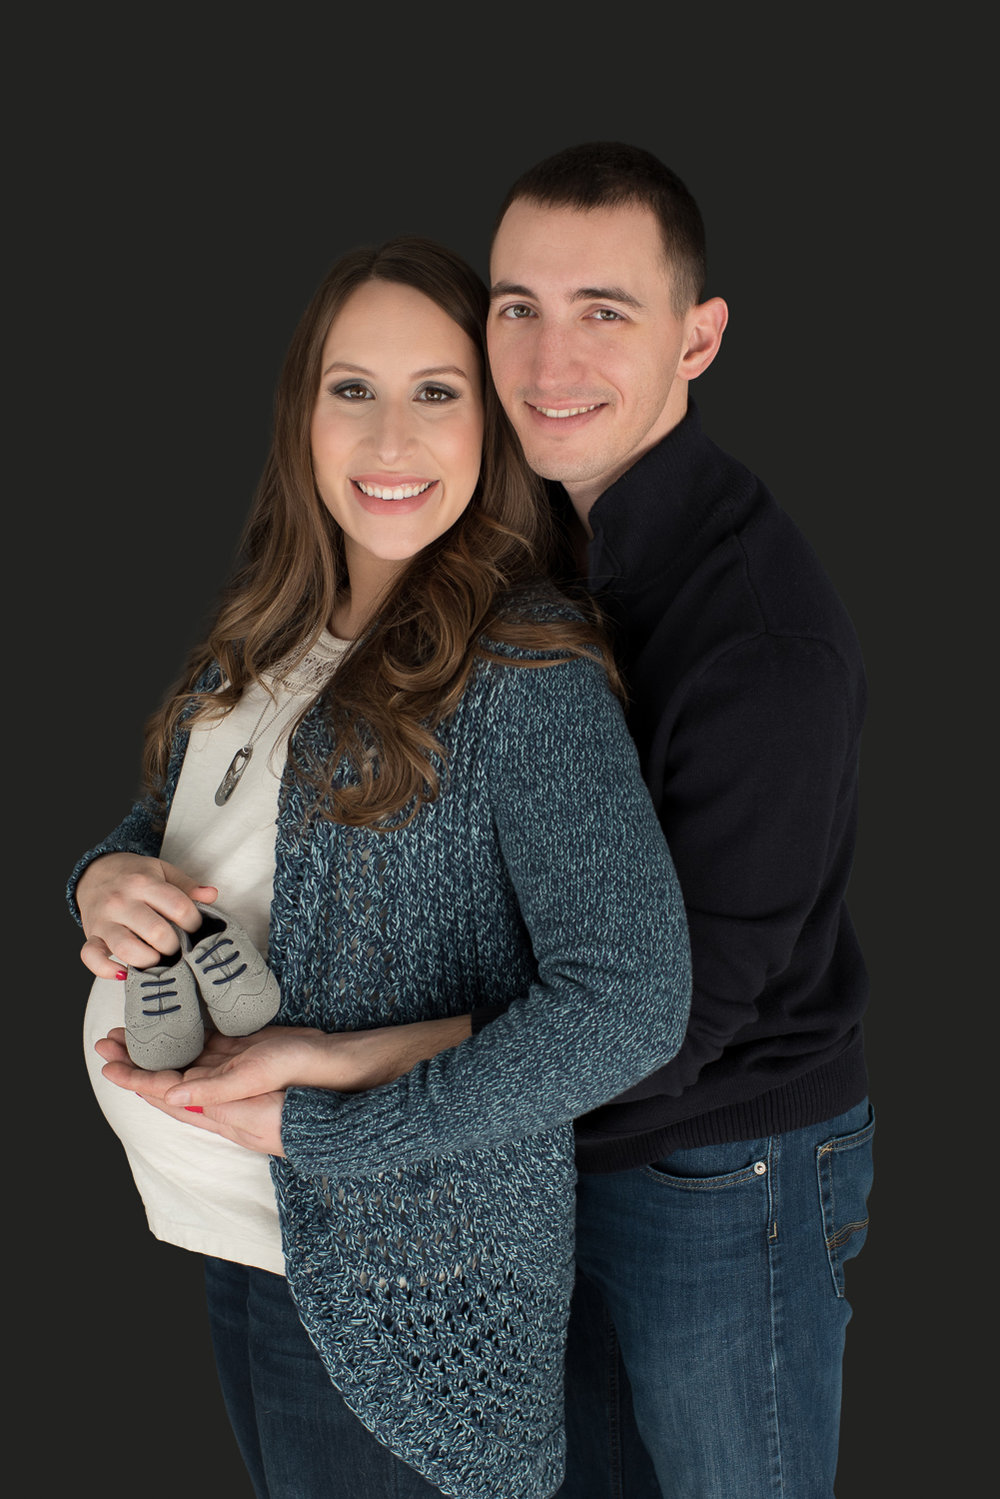 Couples Maternity Photos in Clarksville with D. Phillips Photography